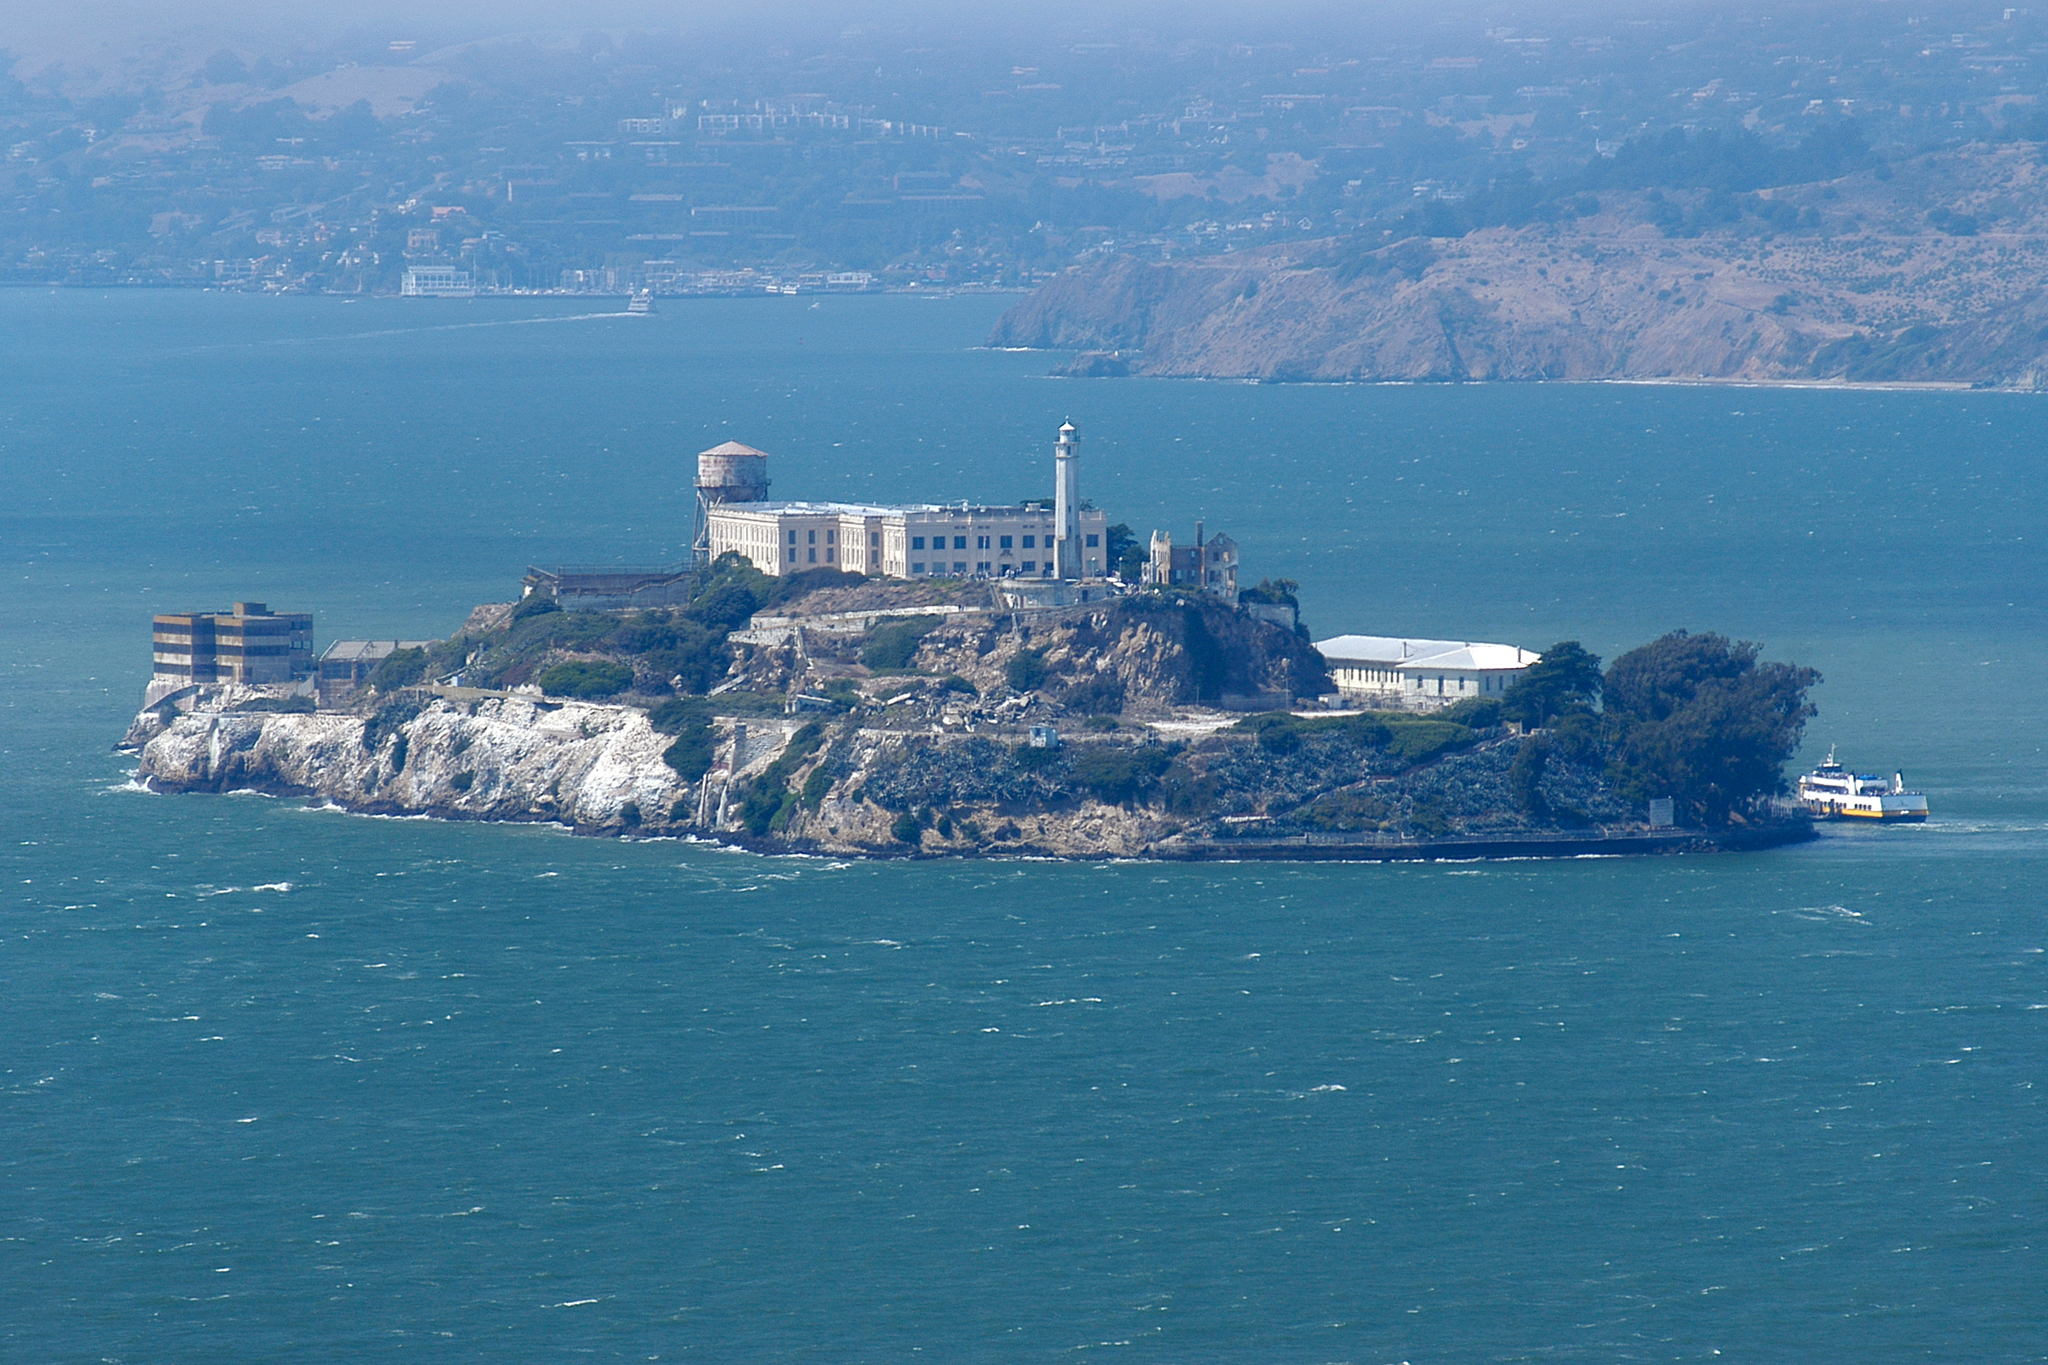 Take a night tour of Alcatraz Island